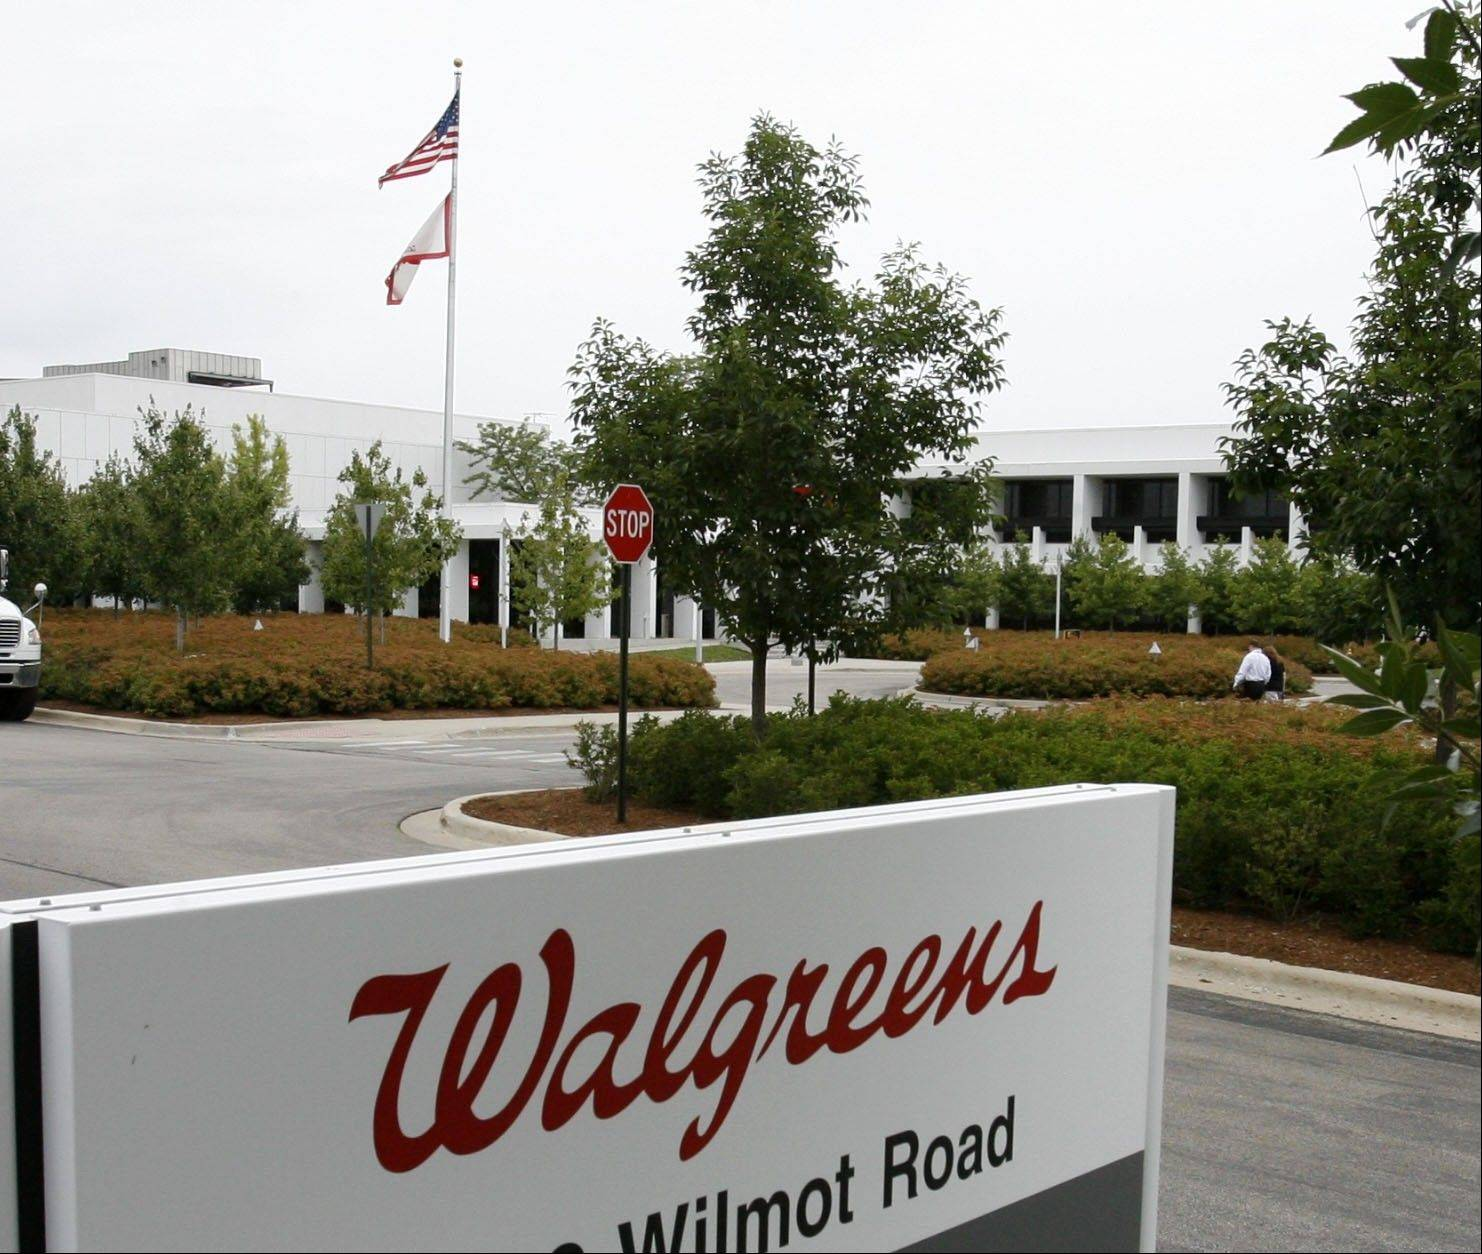 Deerfield-based Walgreen Co., the largest U.S. drugstore chain, was ordered to pay $16.6 million to resolve a lawsuit brought by California cities alleging the retailer tossed pesticides, paint and pharmaceutical waste into local landfills.